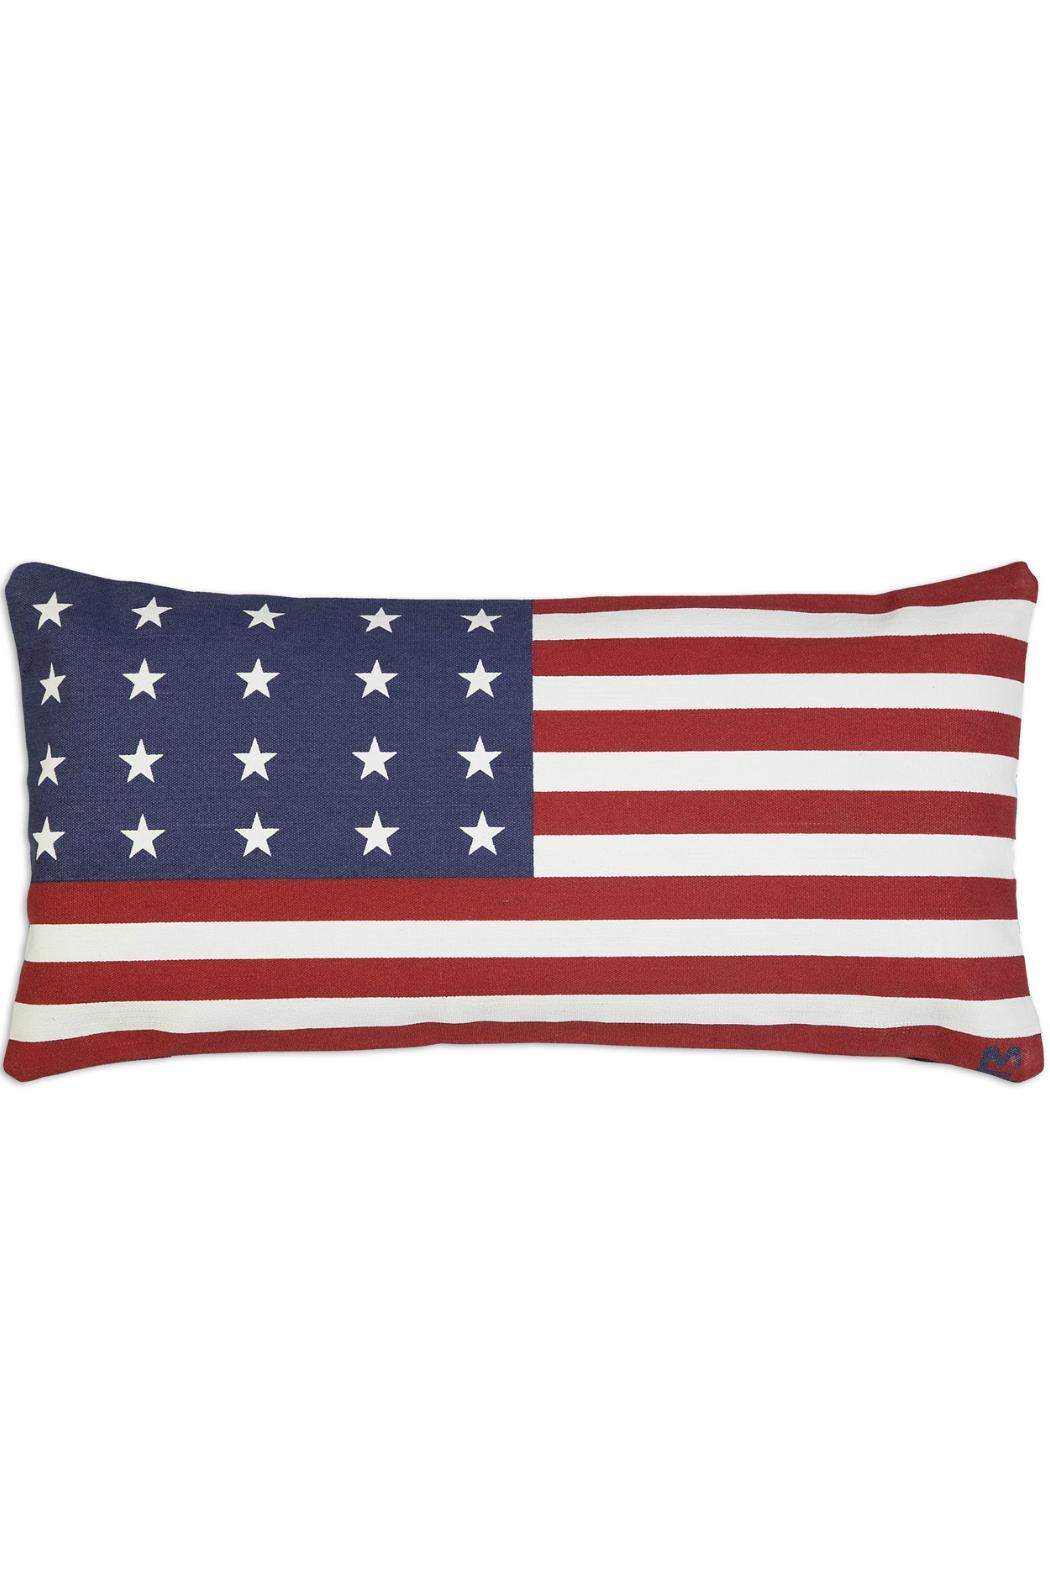 Chandler 4 Corners Americanflag Canvas Pillow - Main Image